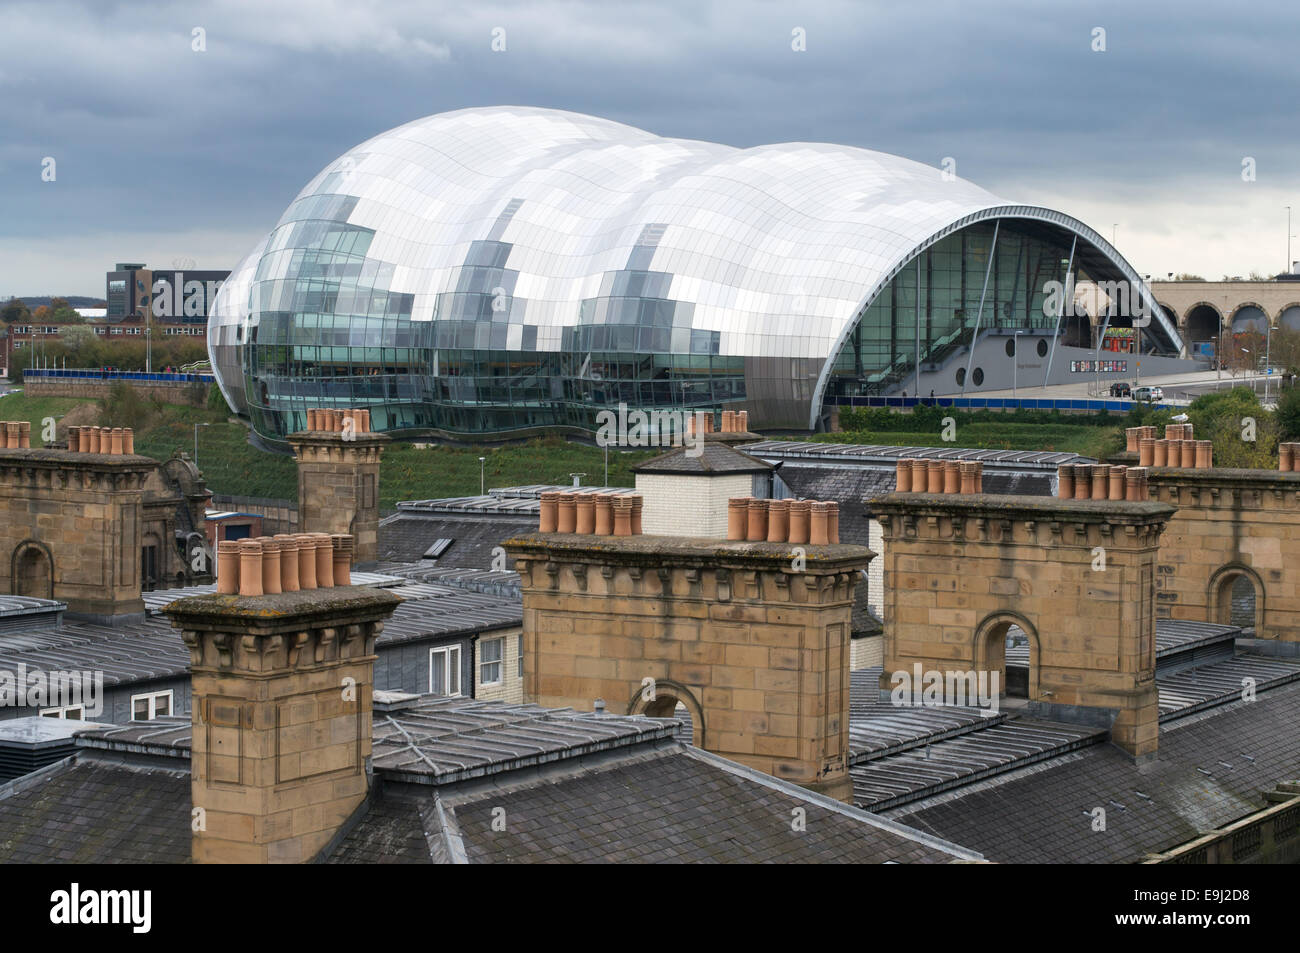 The Sage concert hall in Gateshead seen across a row of chimney pots north east England UK - Stock Image